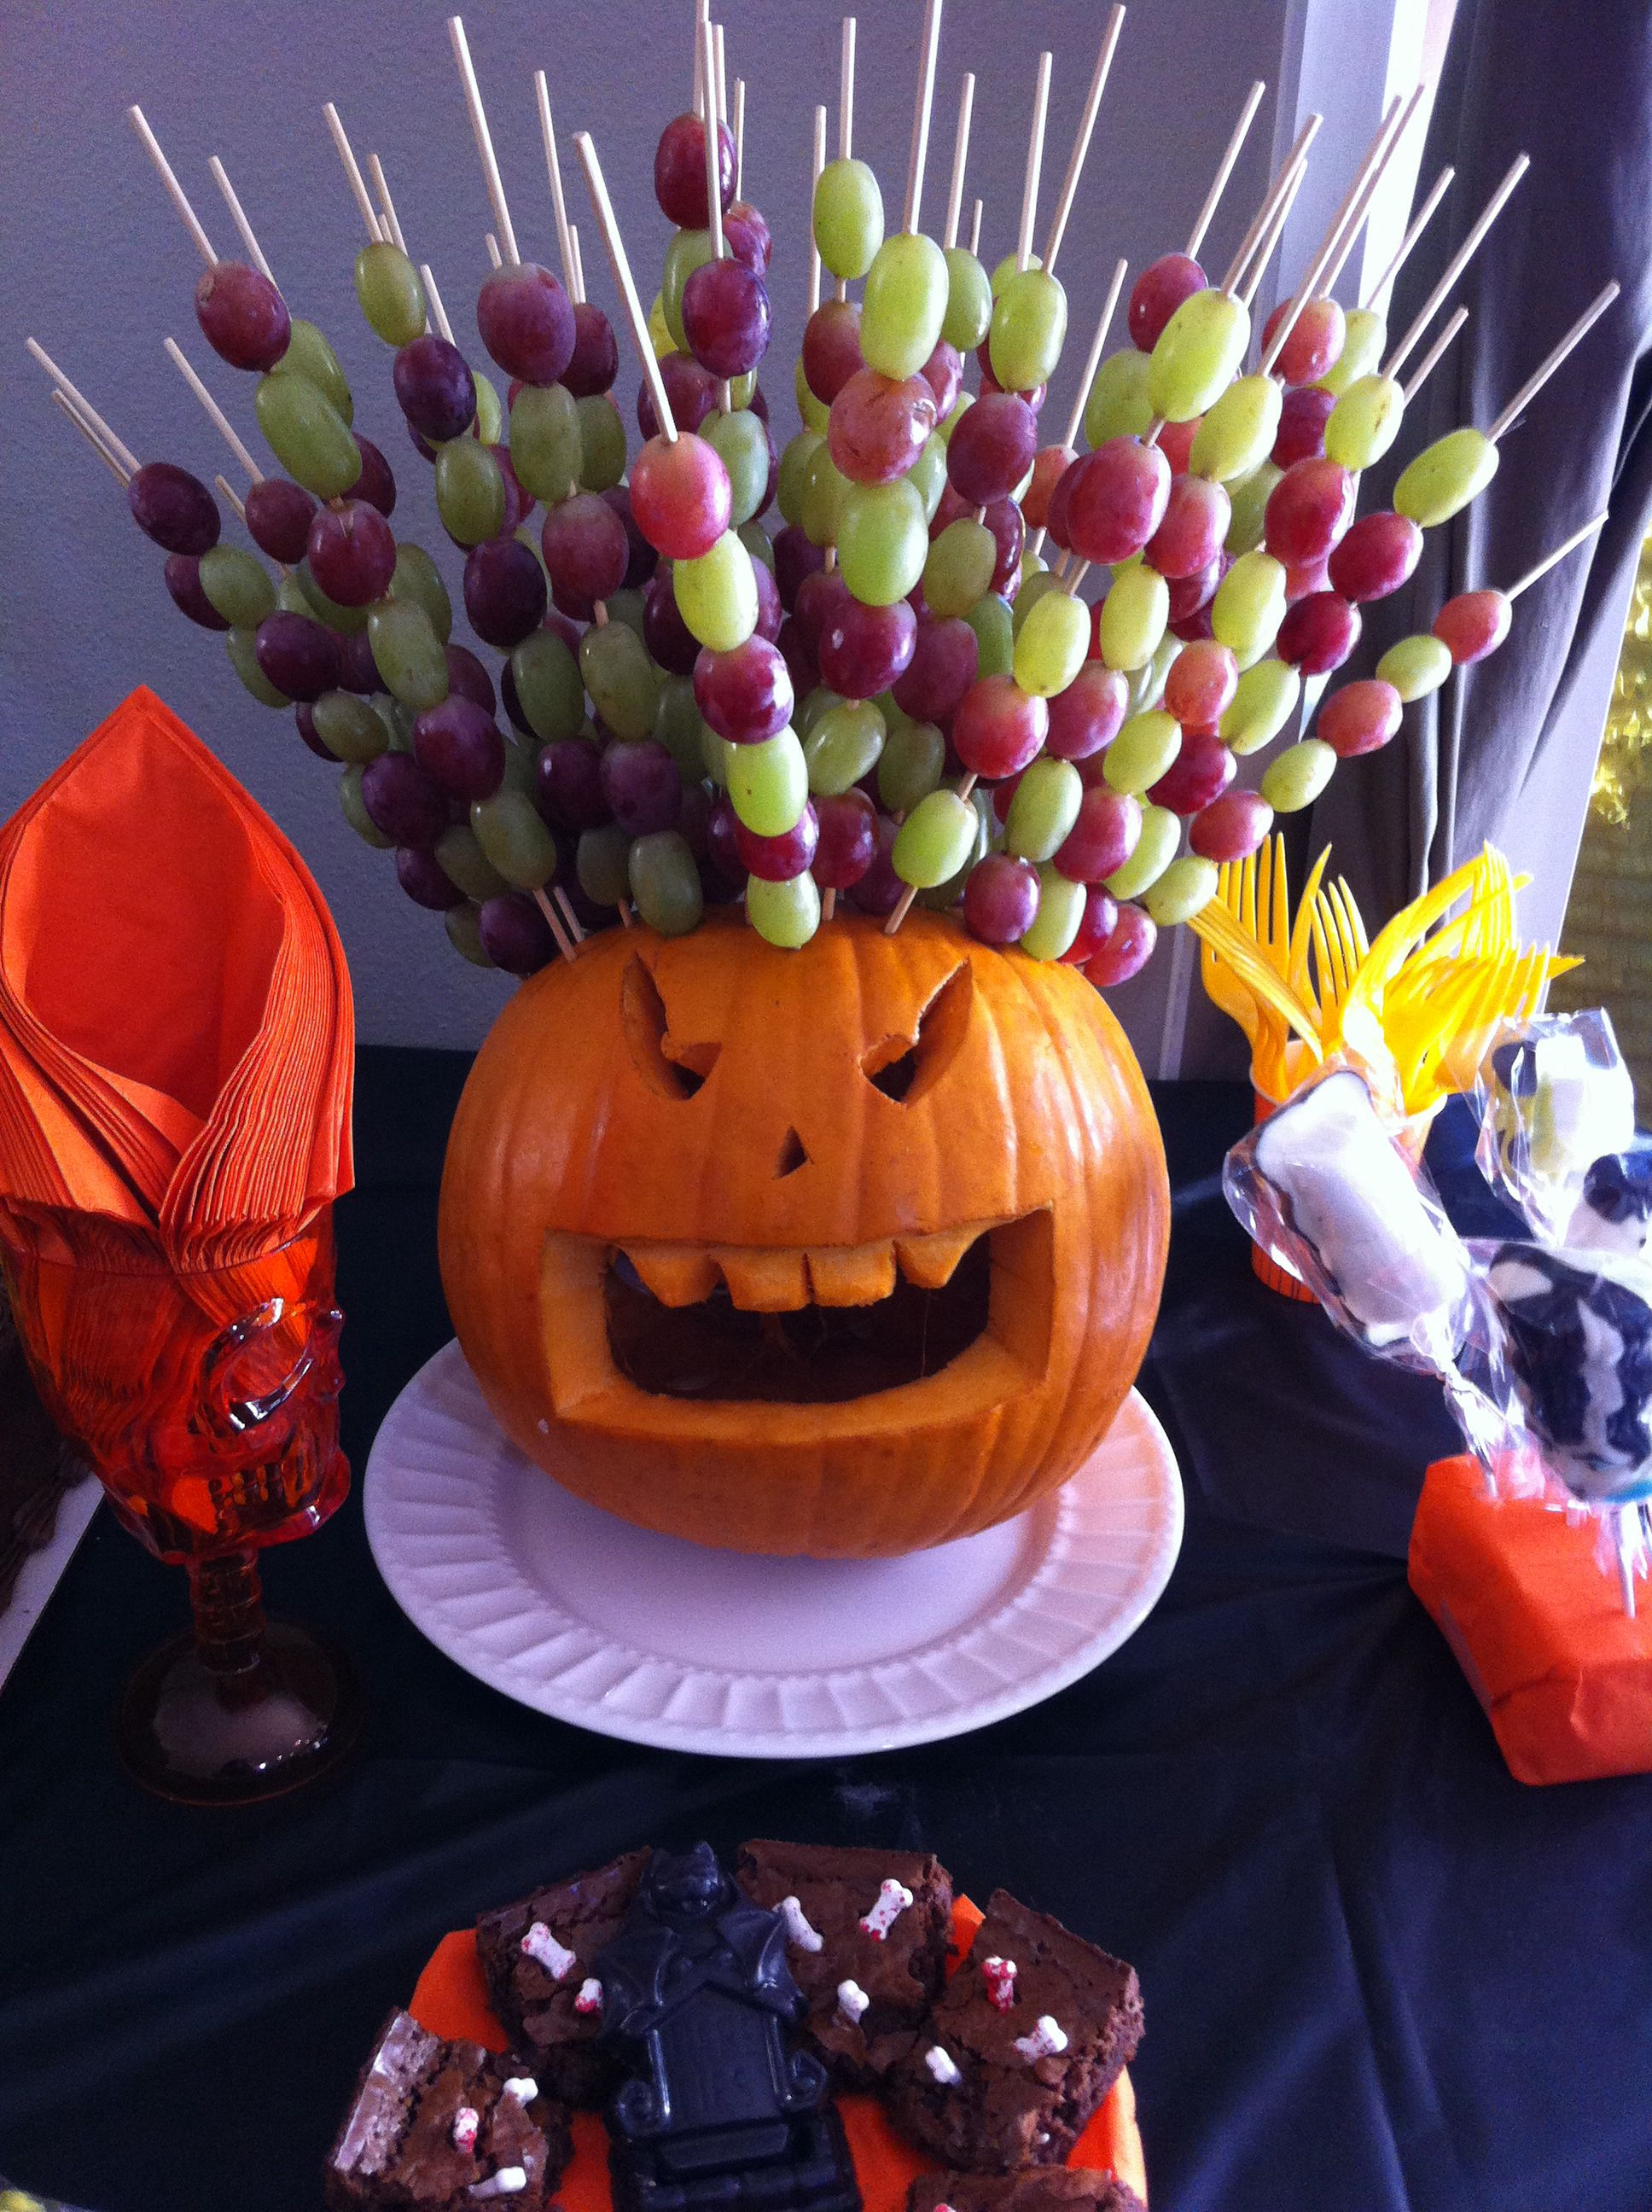 Carved pumpkin used to serve fruit at a Halloween party